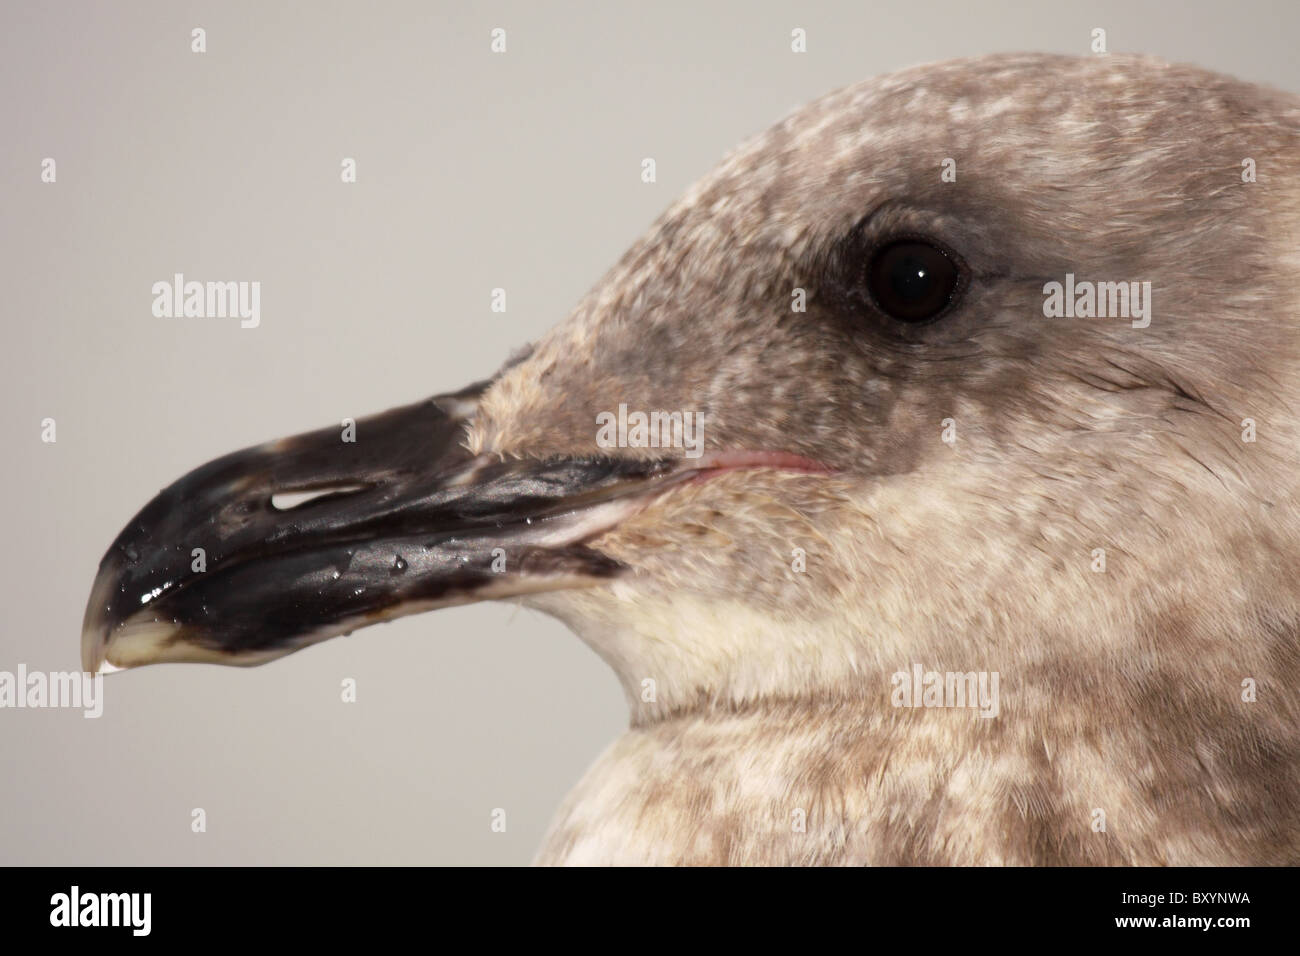 A portrait of Western Gull in 1st year winter plumage. - Stock Image